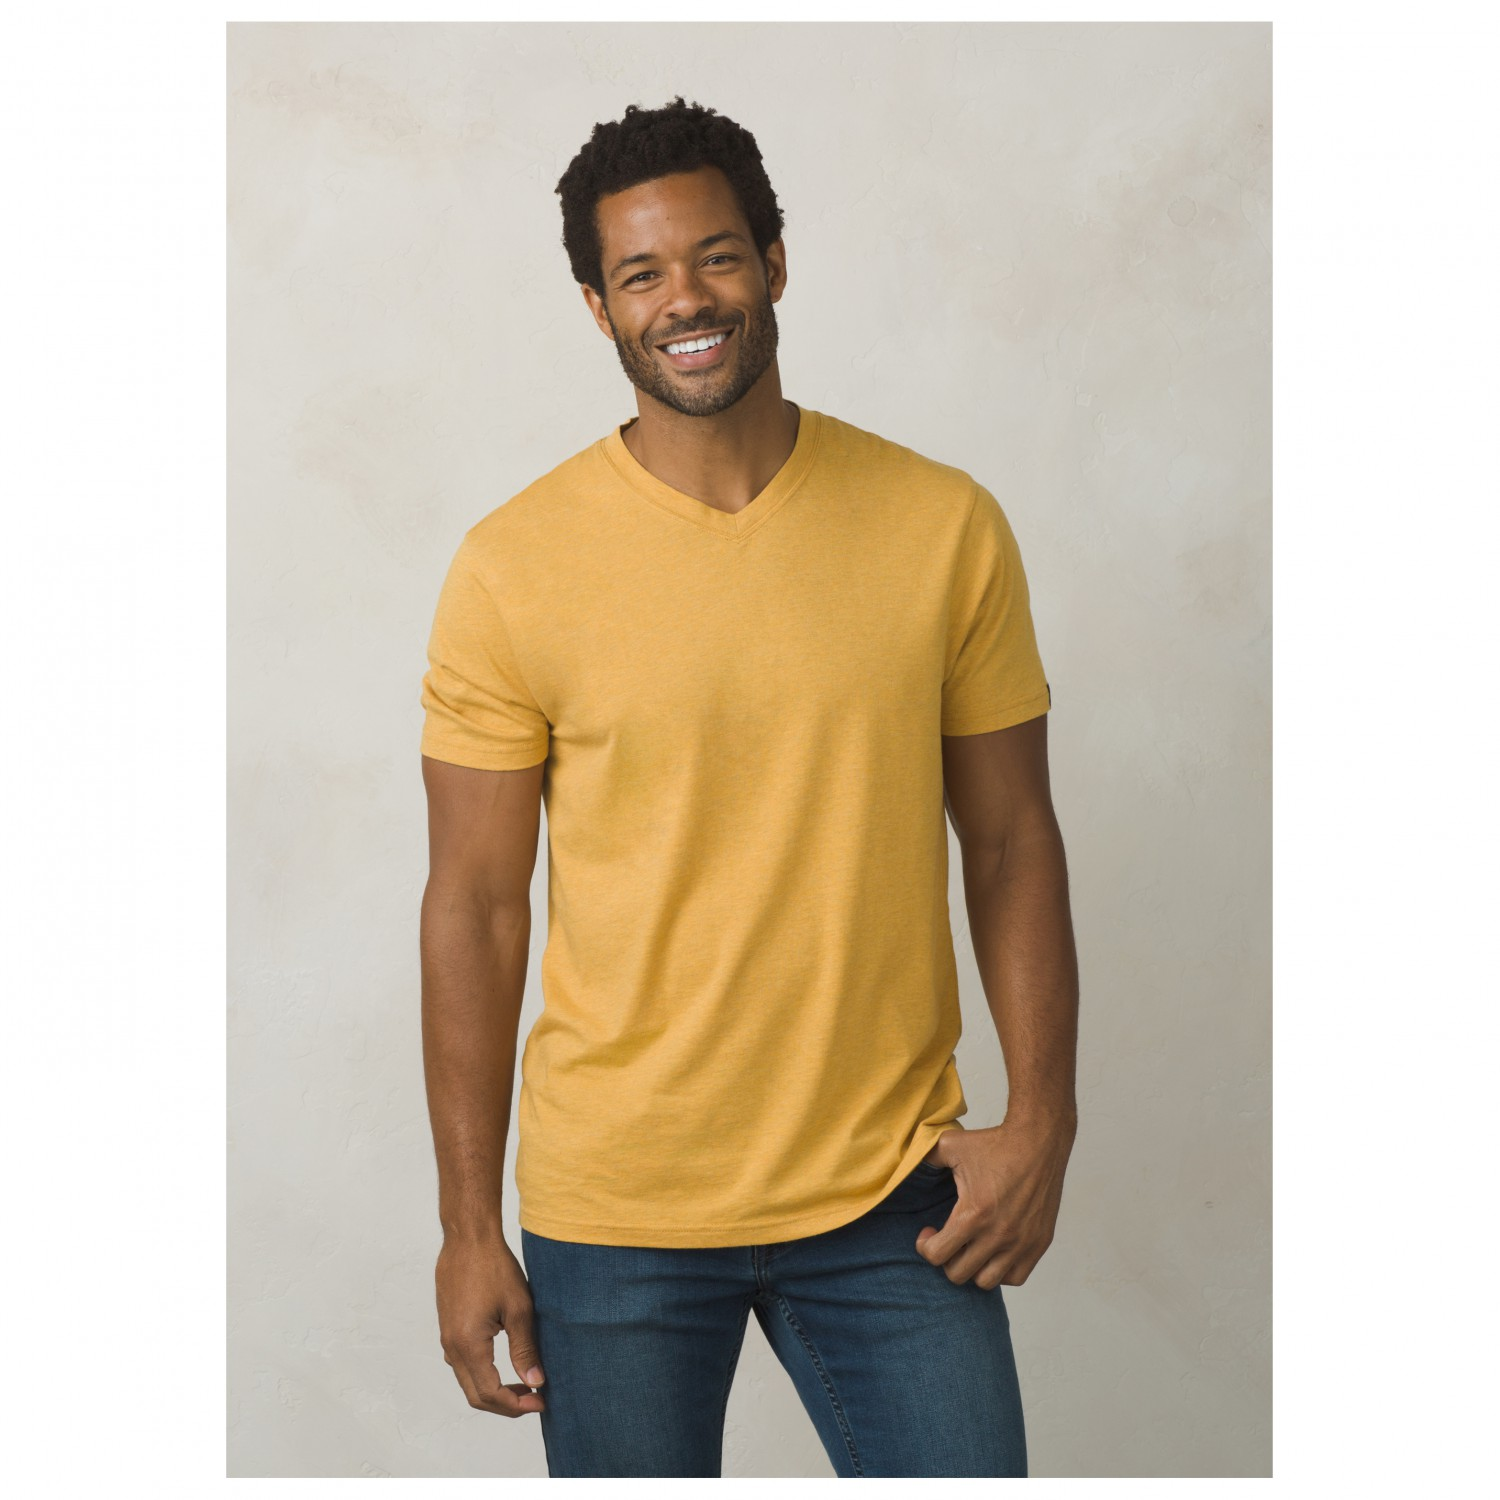 prana prana v neck slim fit t shirt men 39 s buy online. Black Bedroom Furniture Sets. Home Design Ideas